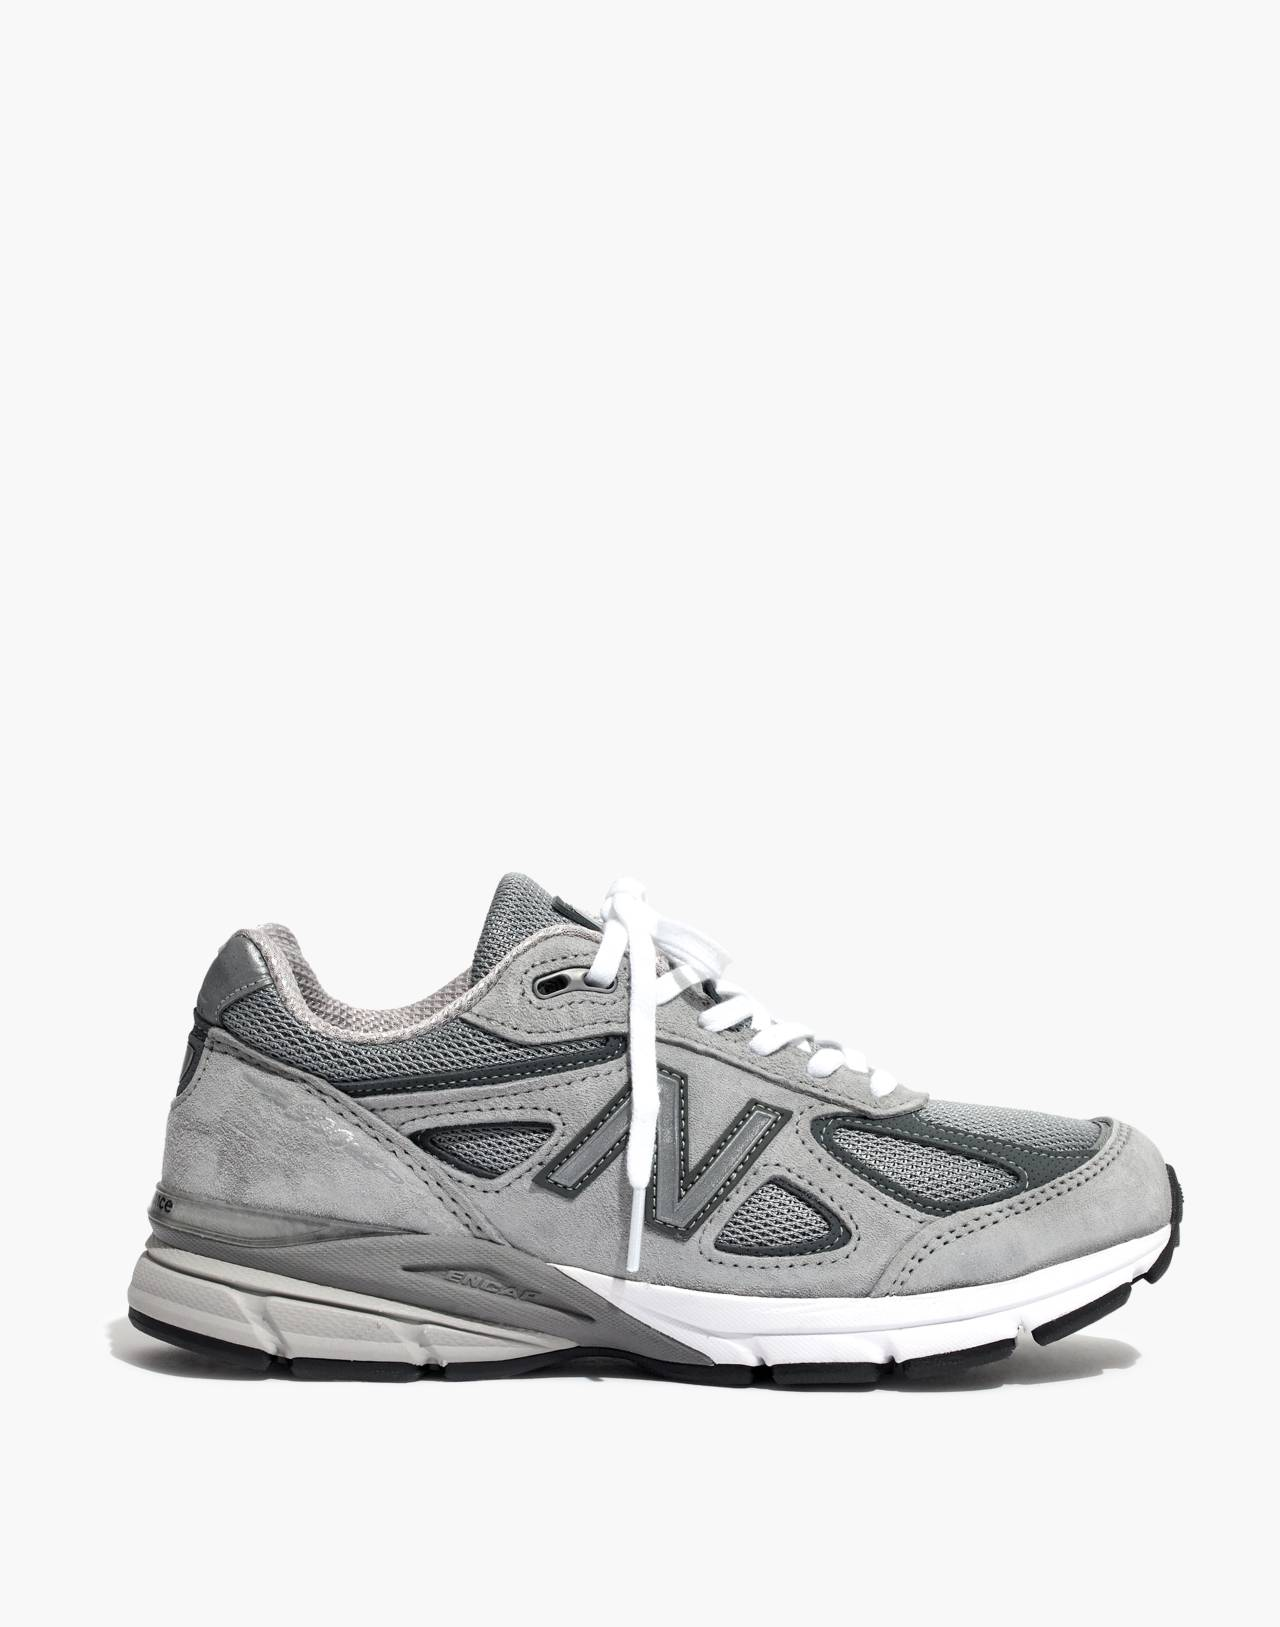 New Balance® 990v4 Sneakers in grey/castle rock image 3